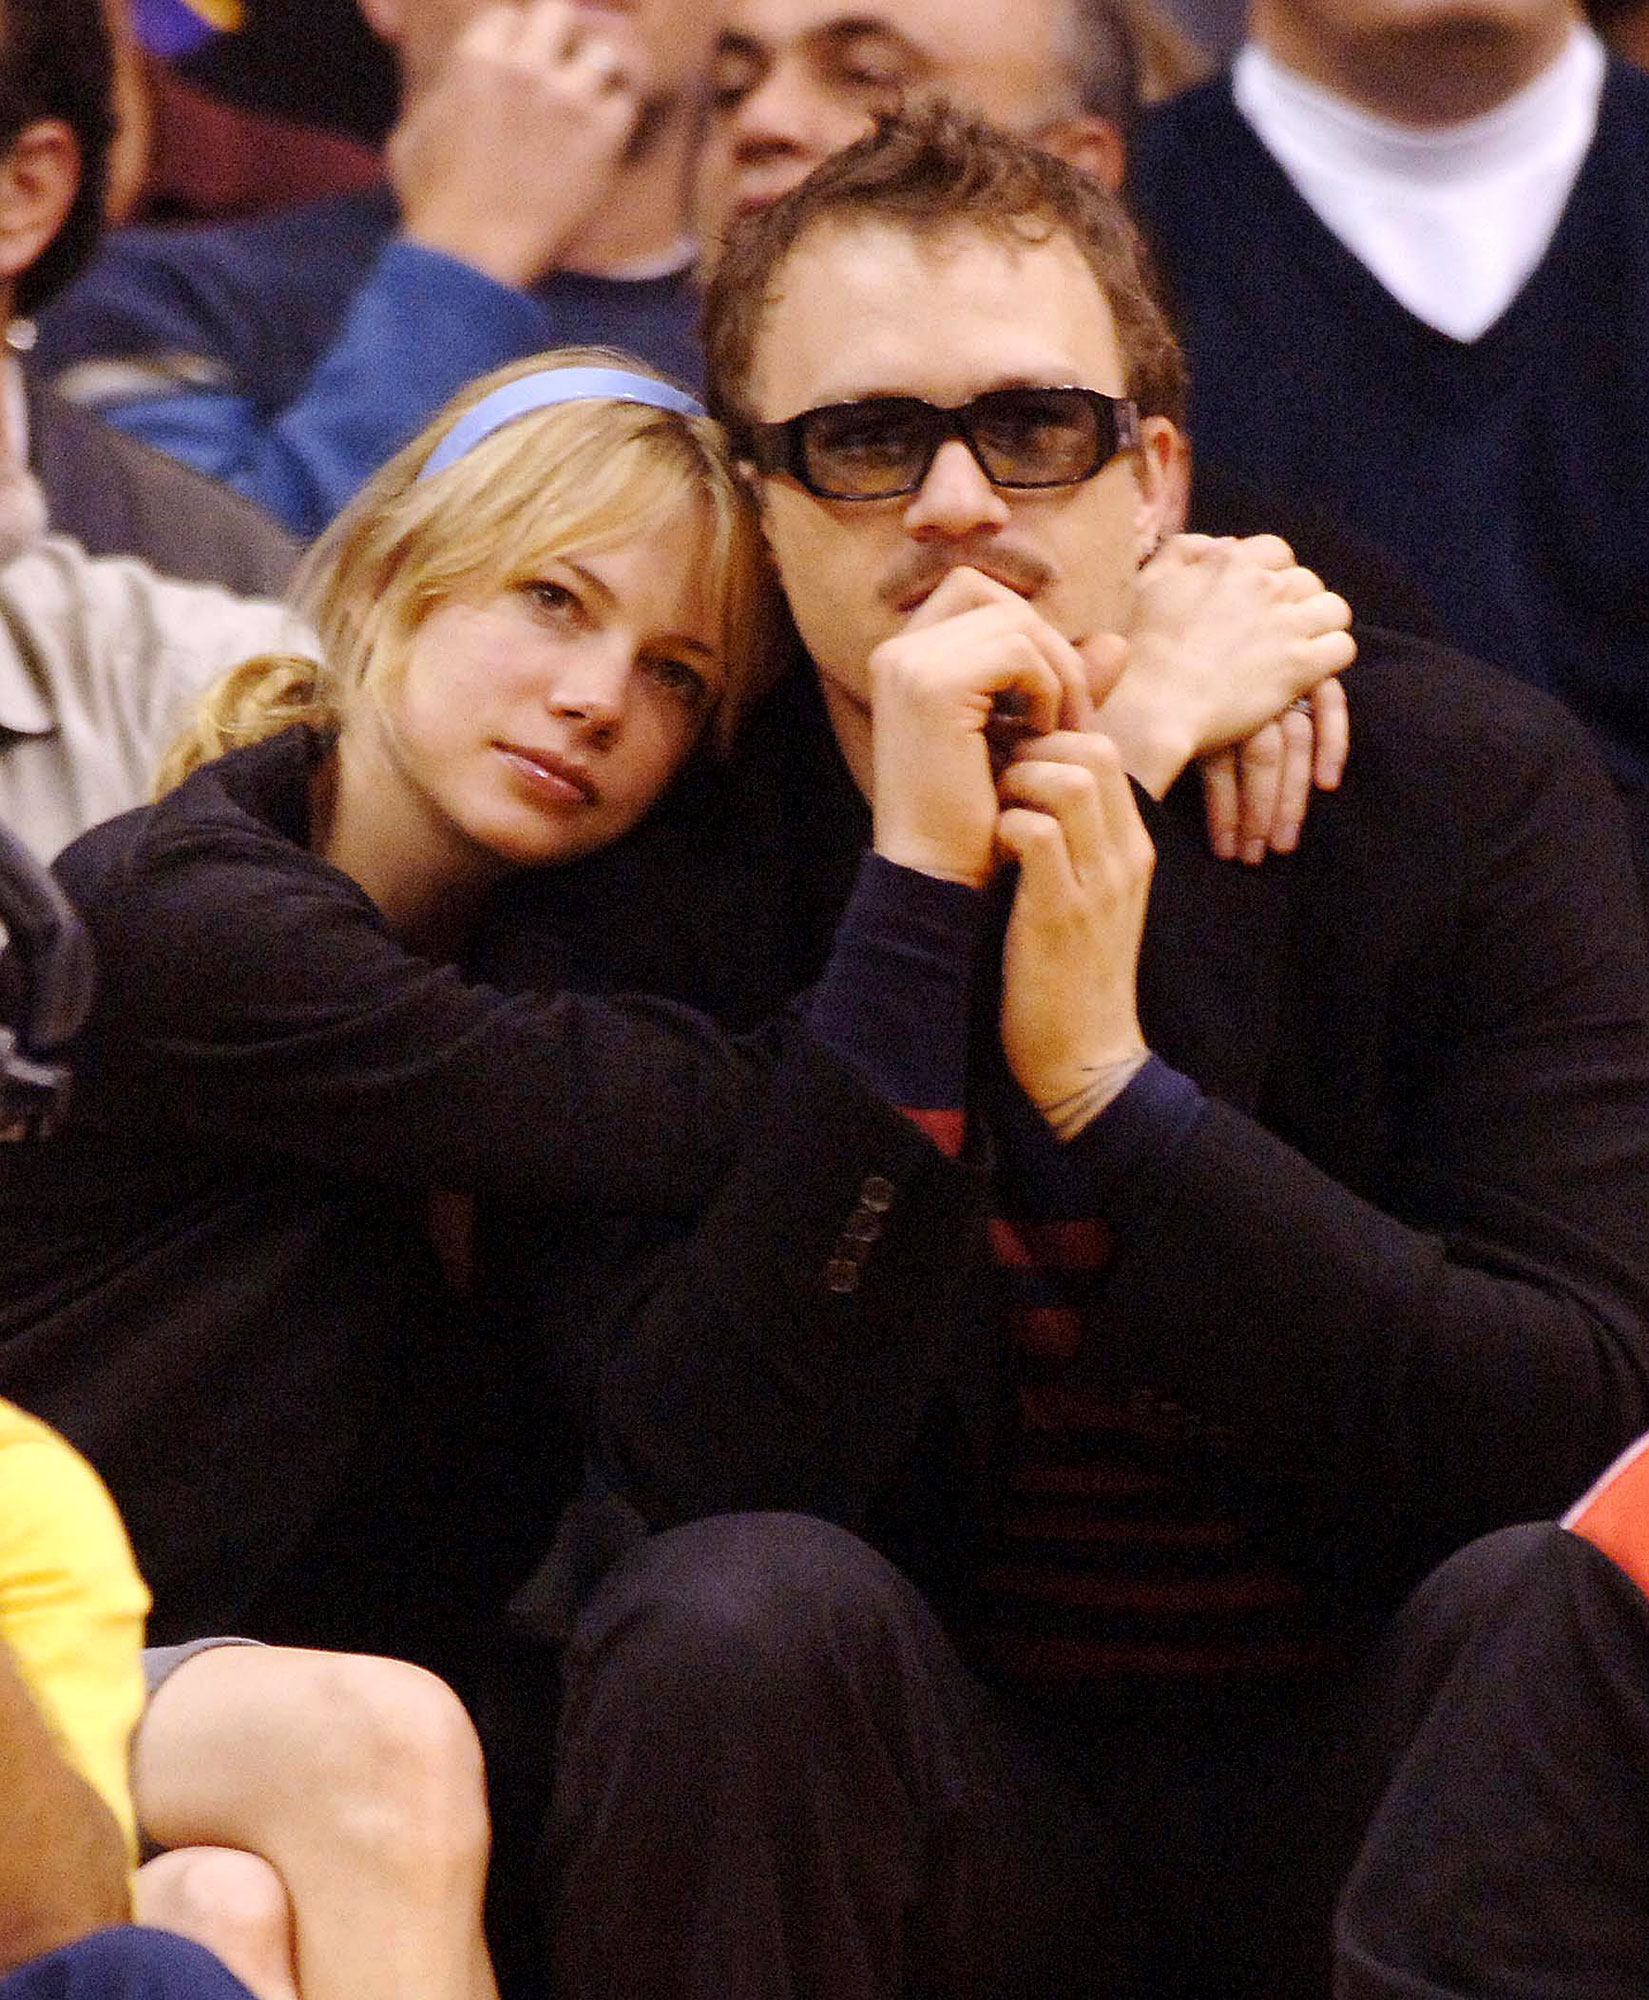 """Michelle Williams' Most Bittersweet Quotes About Heath Ledger and Their Daughter Matilda - The My Week With Marilyn actress revealed to GQ in January 2012 that she would have liked to have more children with the Australian actor. """"I really wanted, and I really expected or imagined, that Matilda would have siblings that were close to her age,"""" she said at the time."""